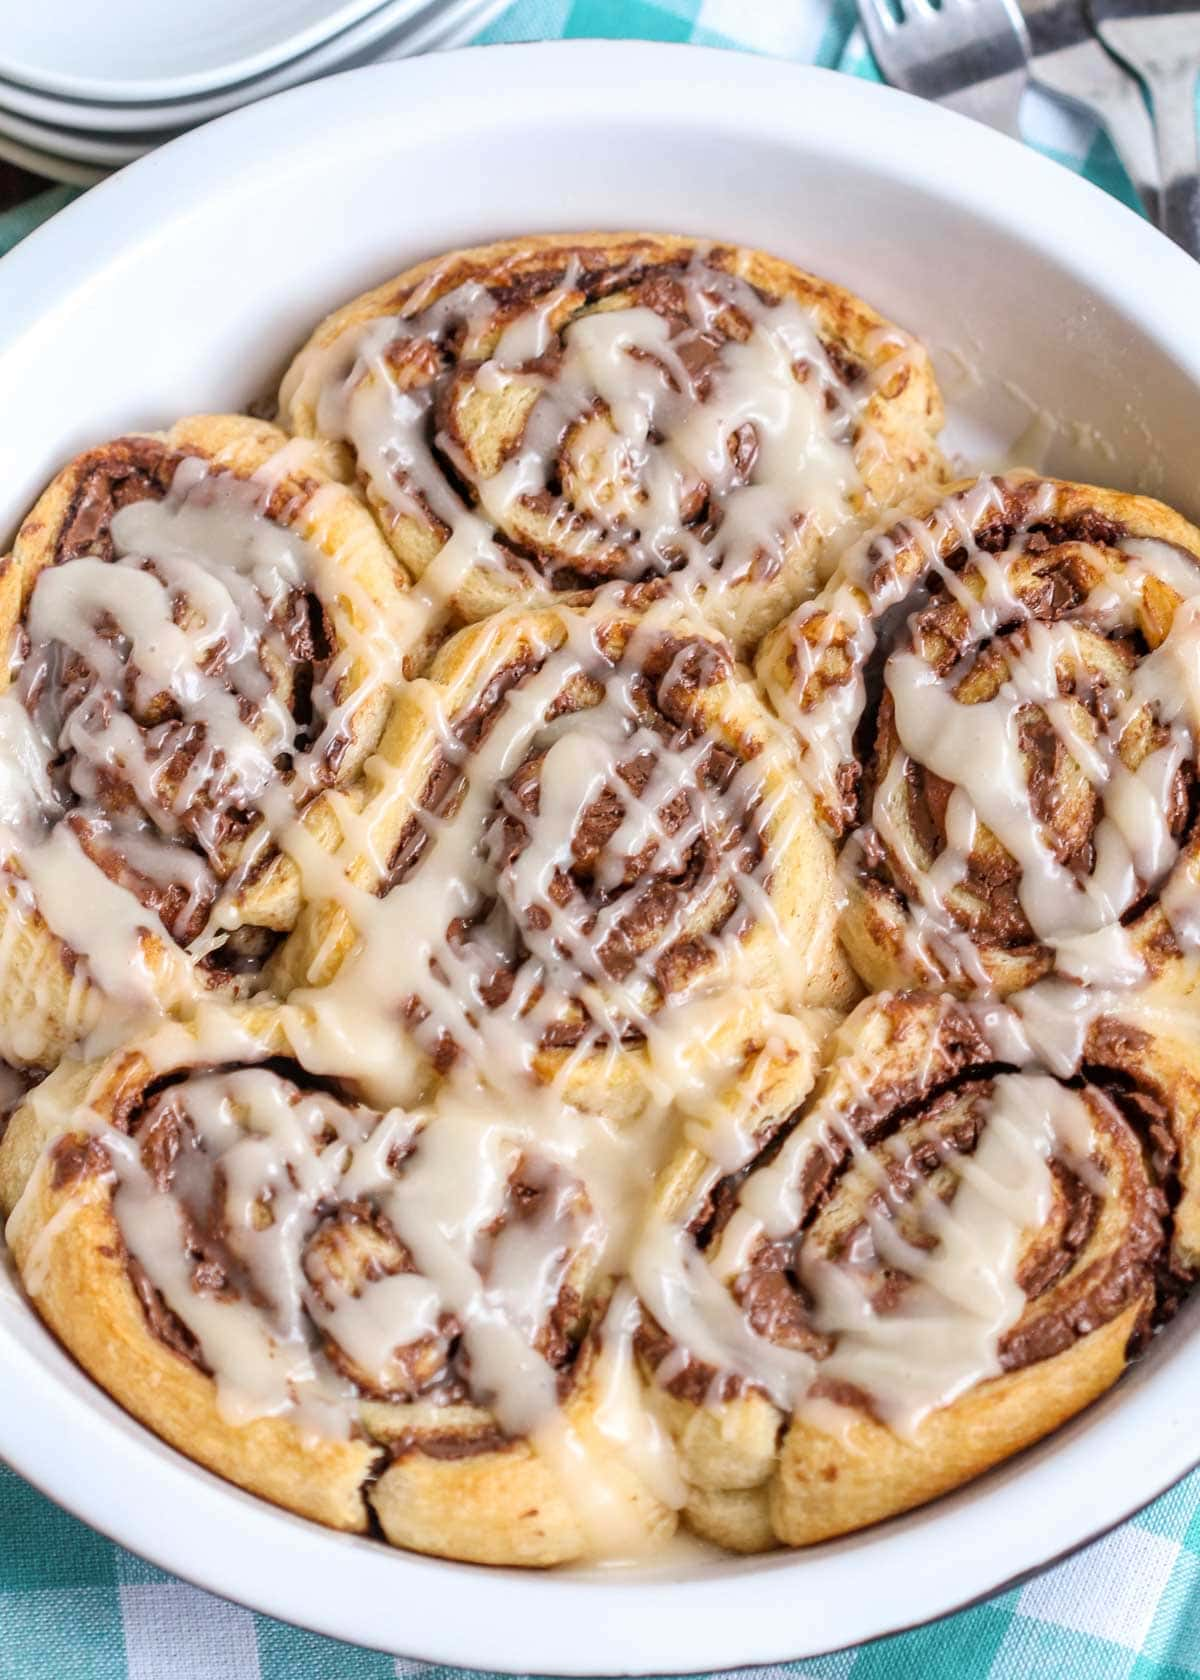 Nutella cinnamon rolls in a round baking dish with glaze drizzled on top